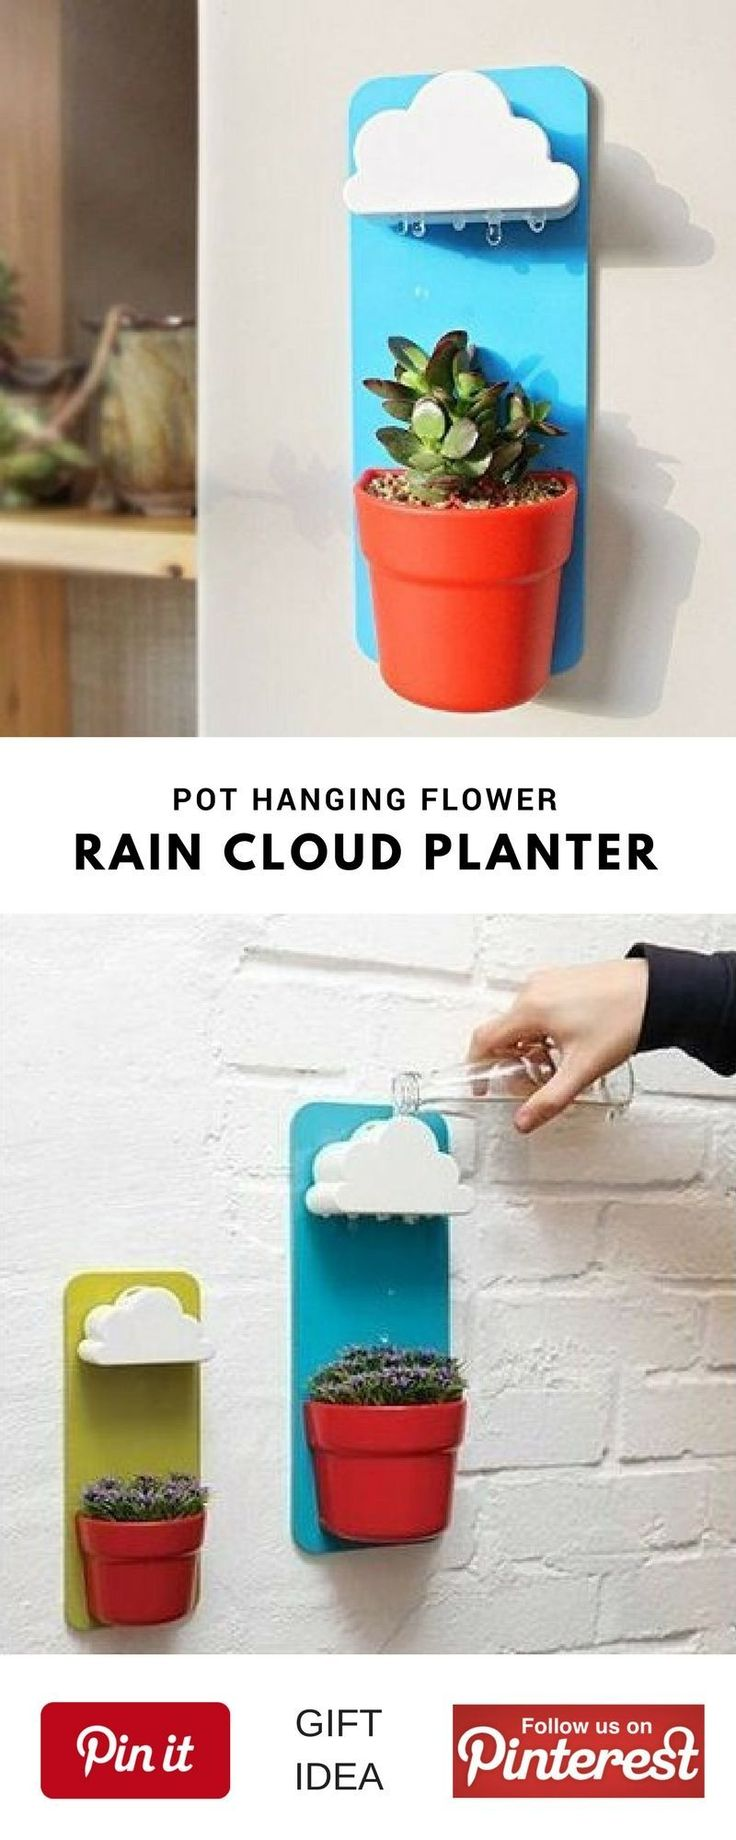 Cloud-Shaped Indoor Wall Mount Rainy Pot Hanging flower Pot With One Pair. This could be a great best gift for mother's day, birthday for women, girls and little kids, christmas, girlfriend, friends, couples, valentine's, bridesmaid, graduation, weeding, engagement and retirement. It's an inexpensive great meaning present and personalized for any funny guys anniversary.  #cheap #unique #weird #DIY #unusual #homemande #online #coolideas #shop #her #girlfriendbirthday #bridemaidsgiftsdiycheap